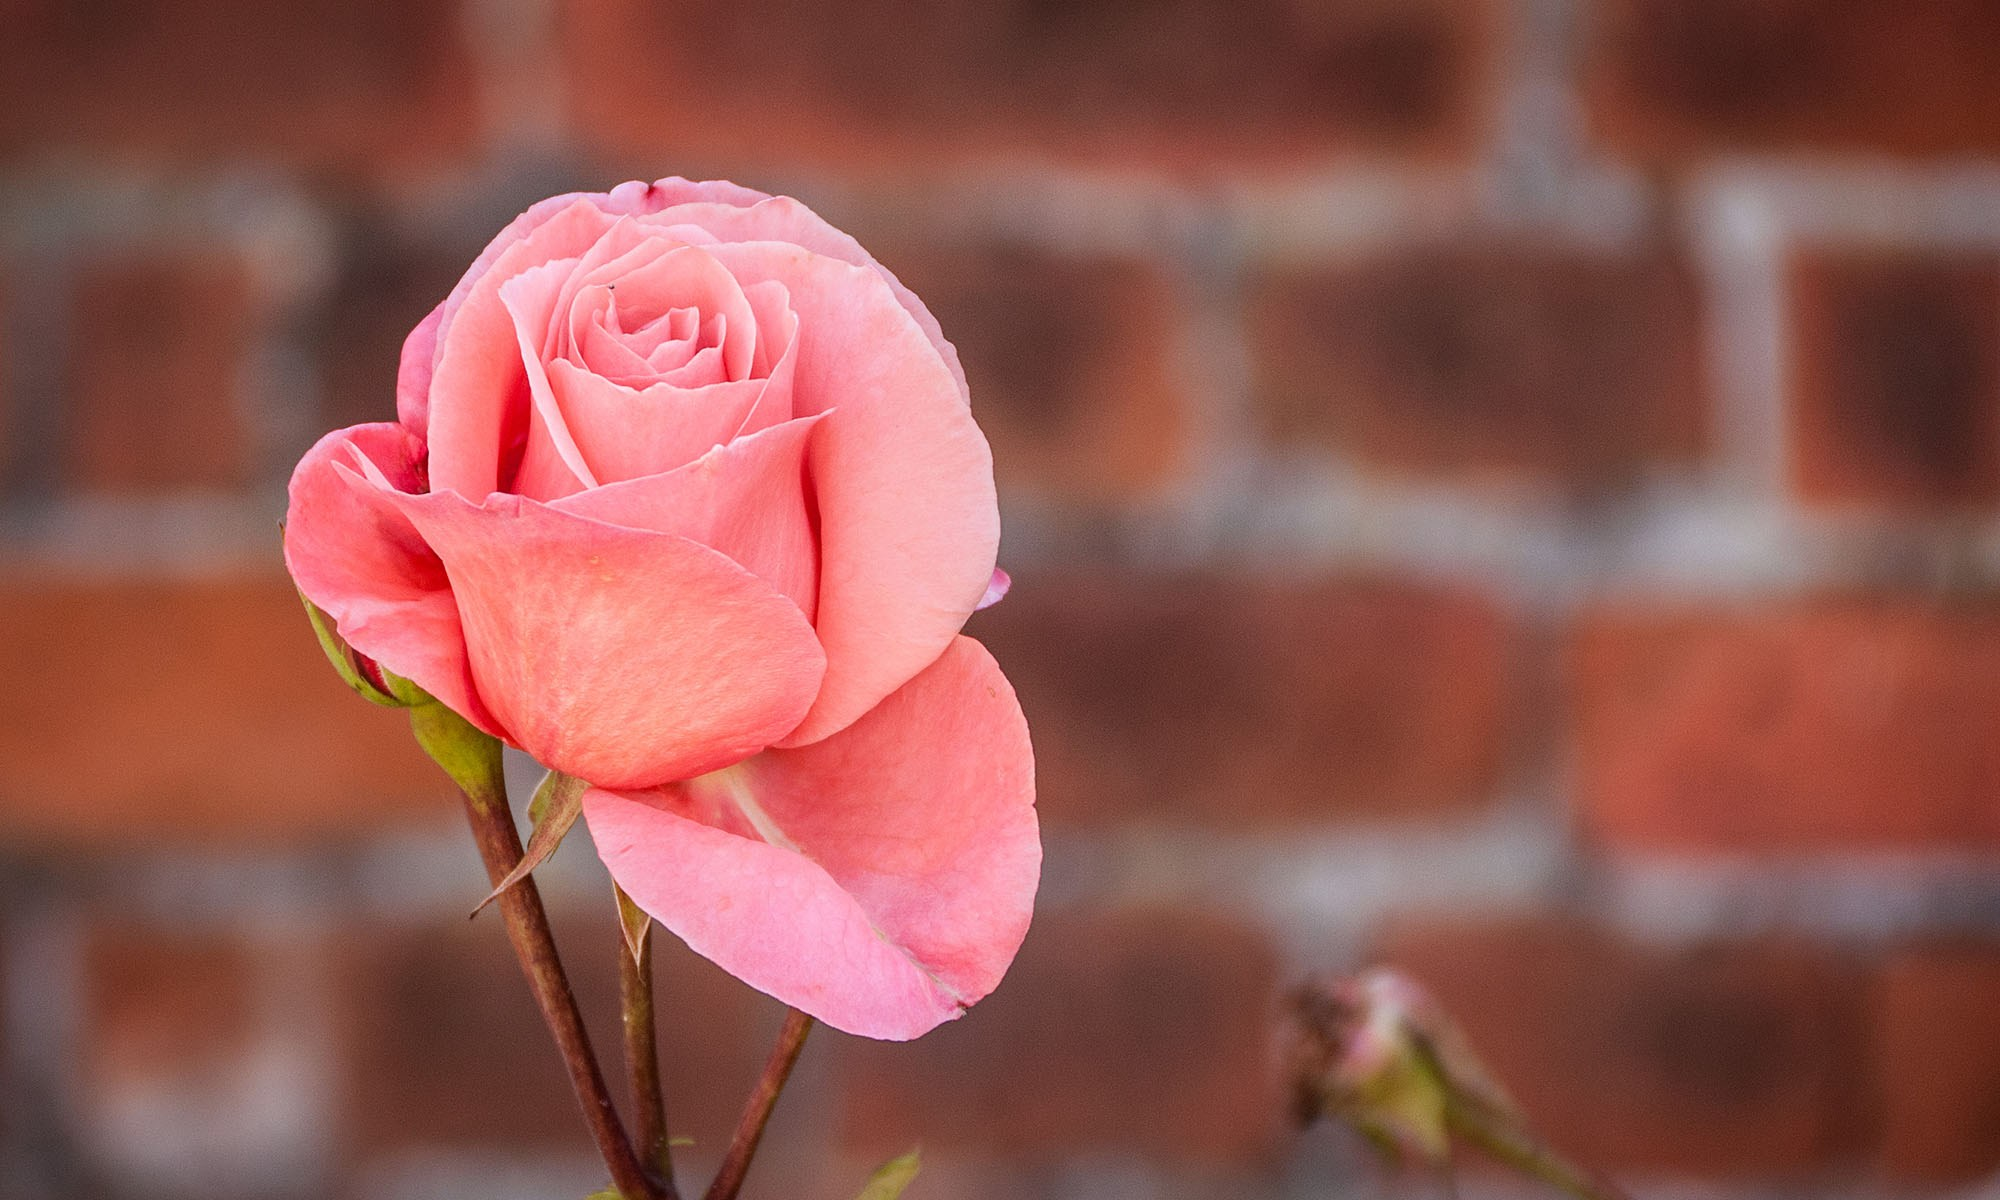 Pink Rose on Brick Background